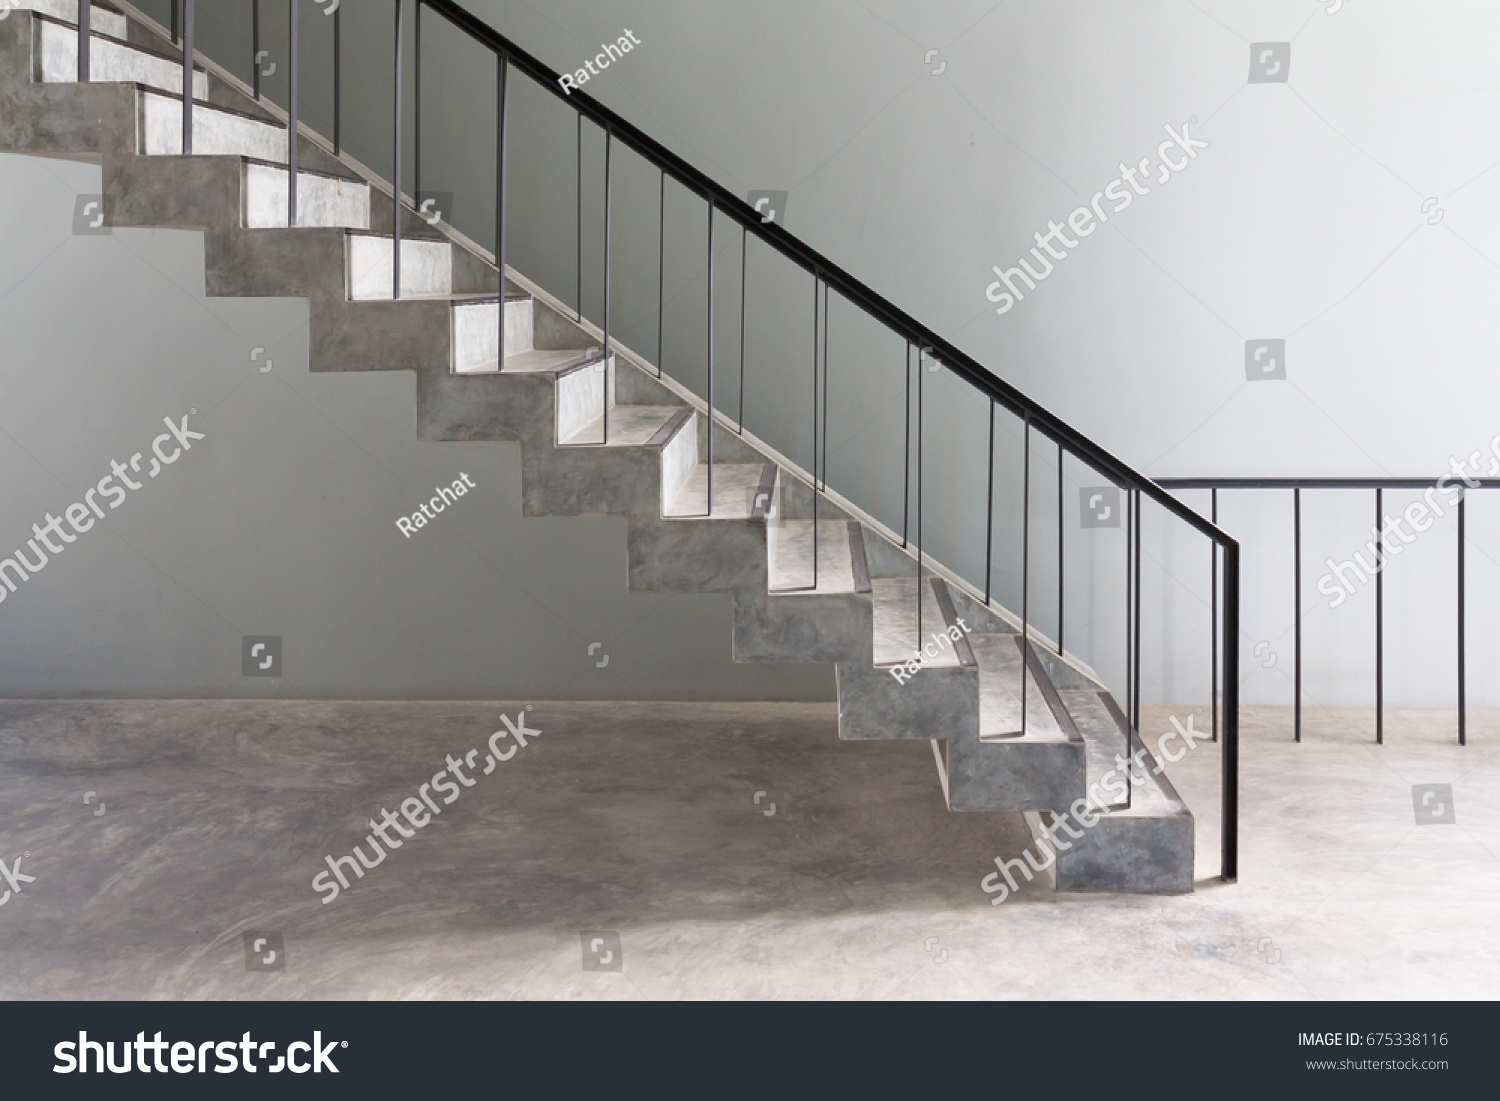 Concrete Stair Steps And Black Steel Ladder Handle, Loft Style For Home  Decoration